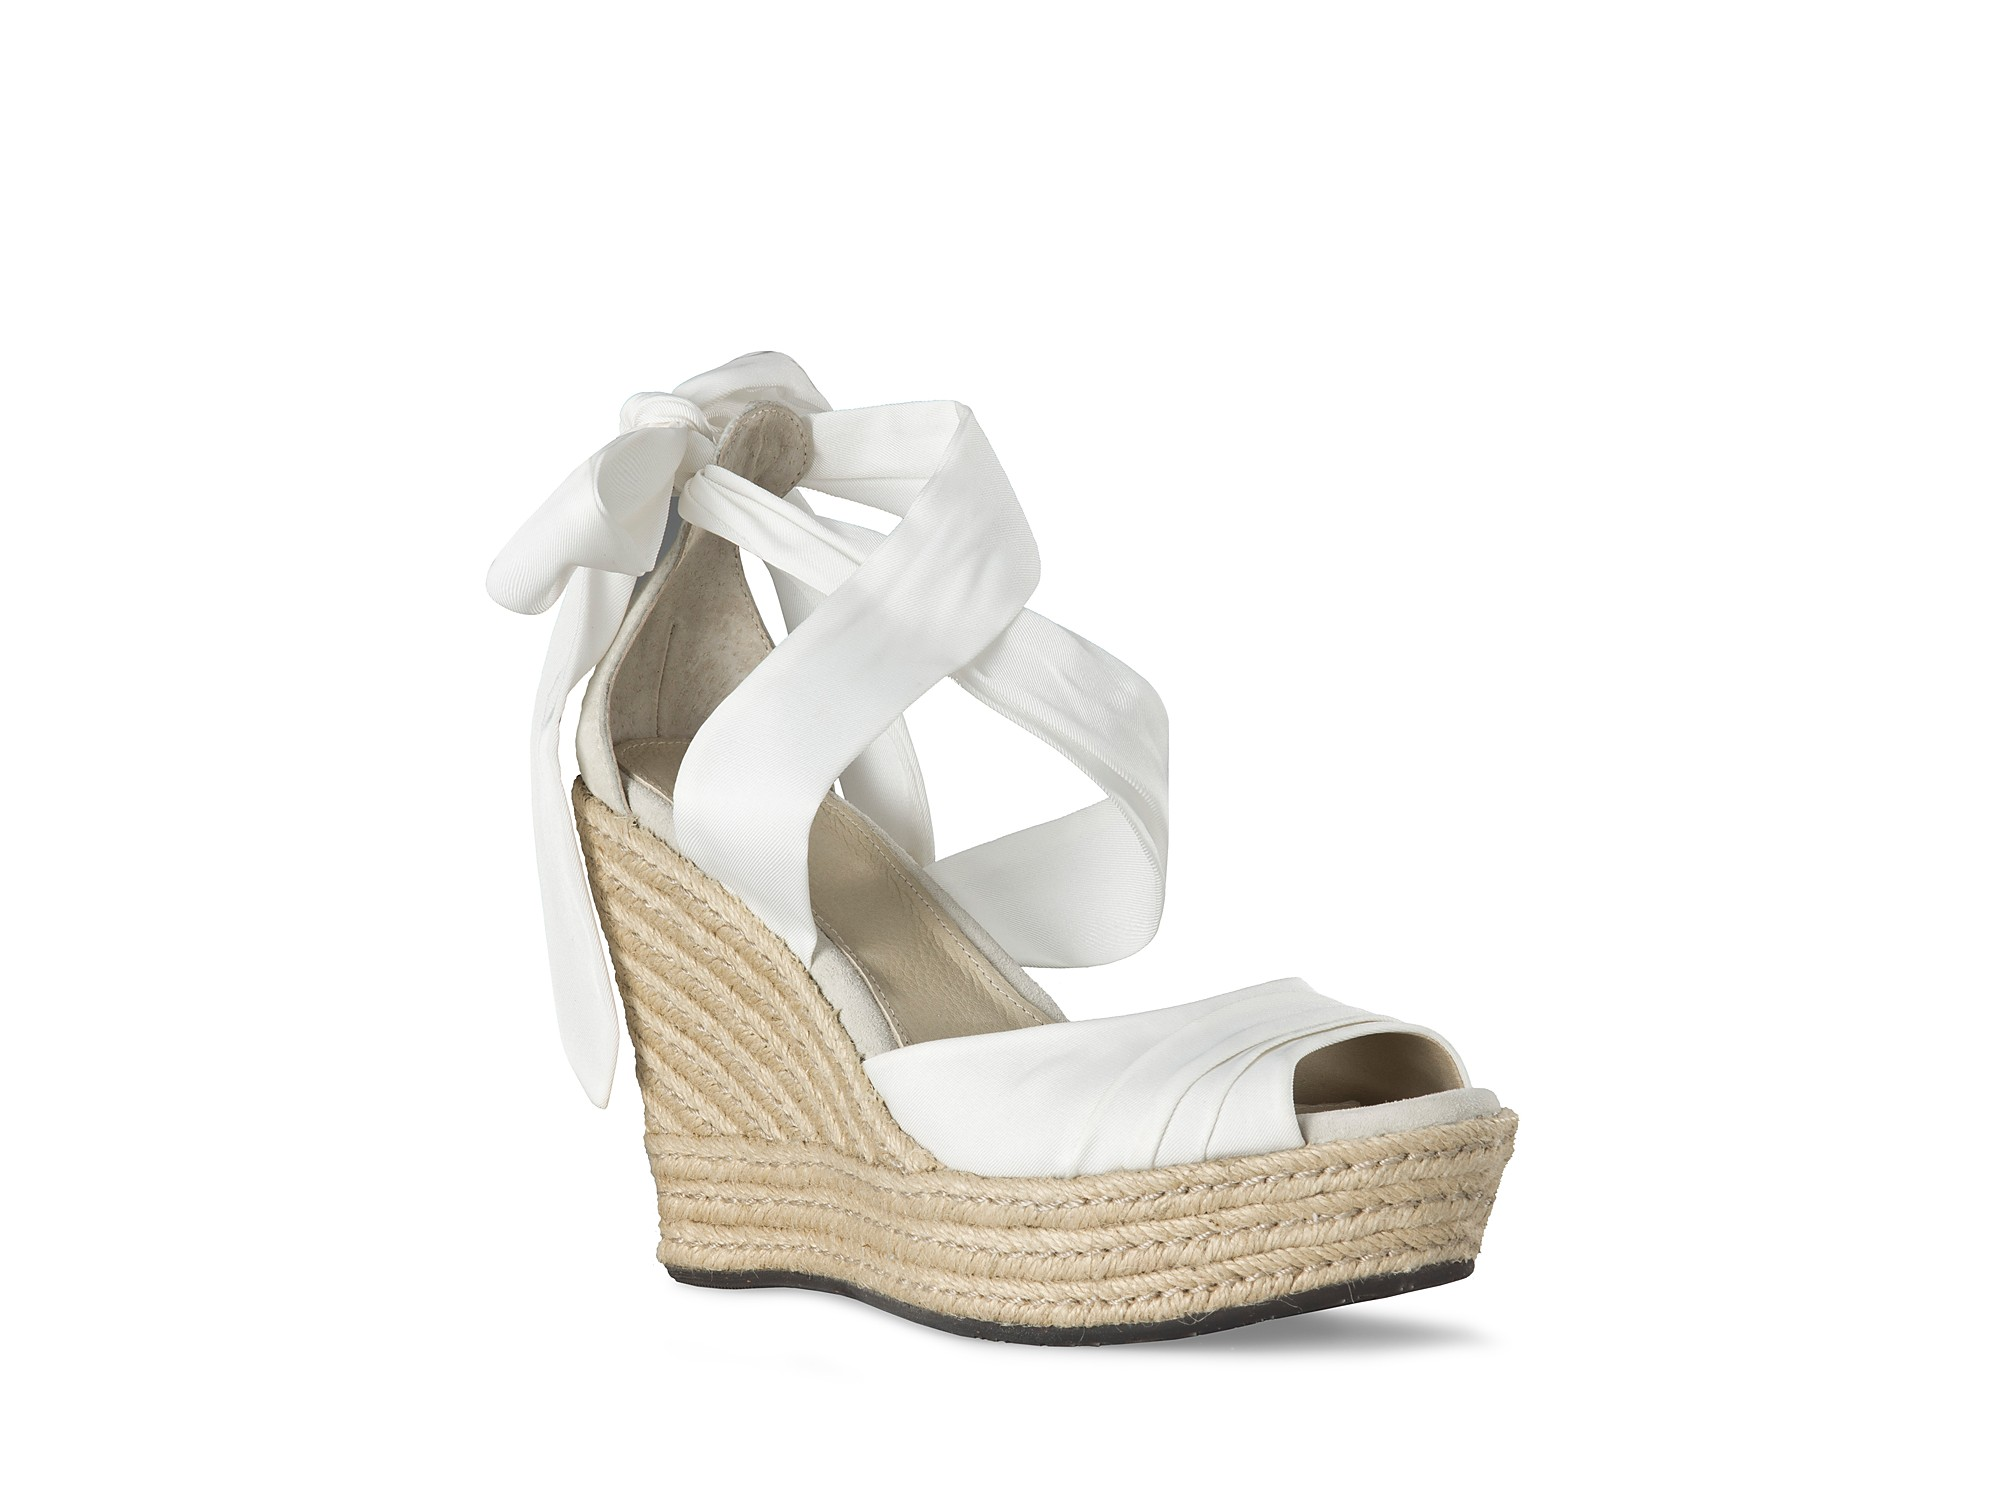 Fall in love with your next favourite pair of shoes when you buy wedges online